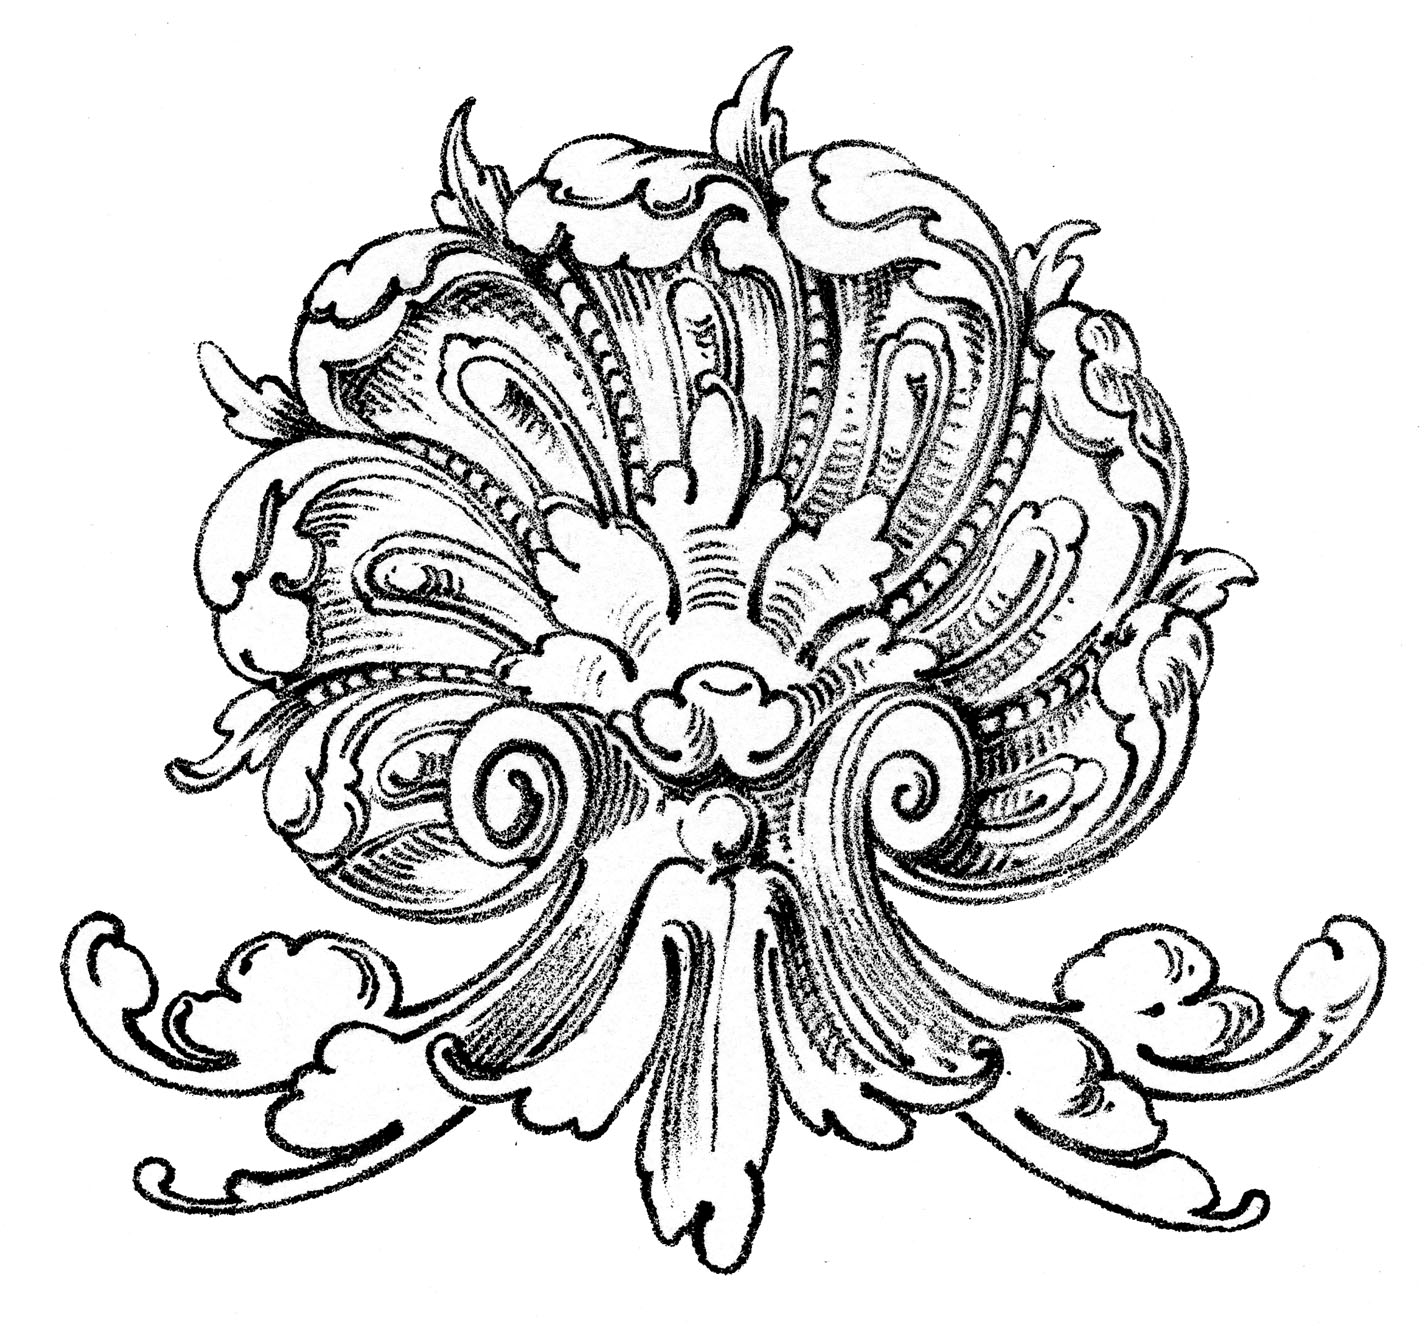 Round Ornamental Shell Image